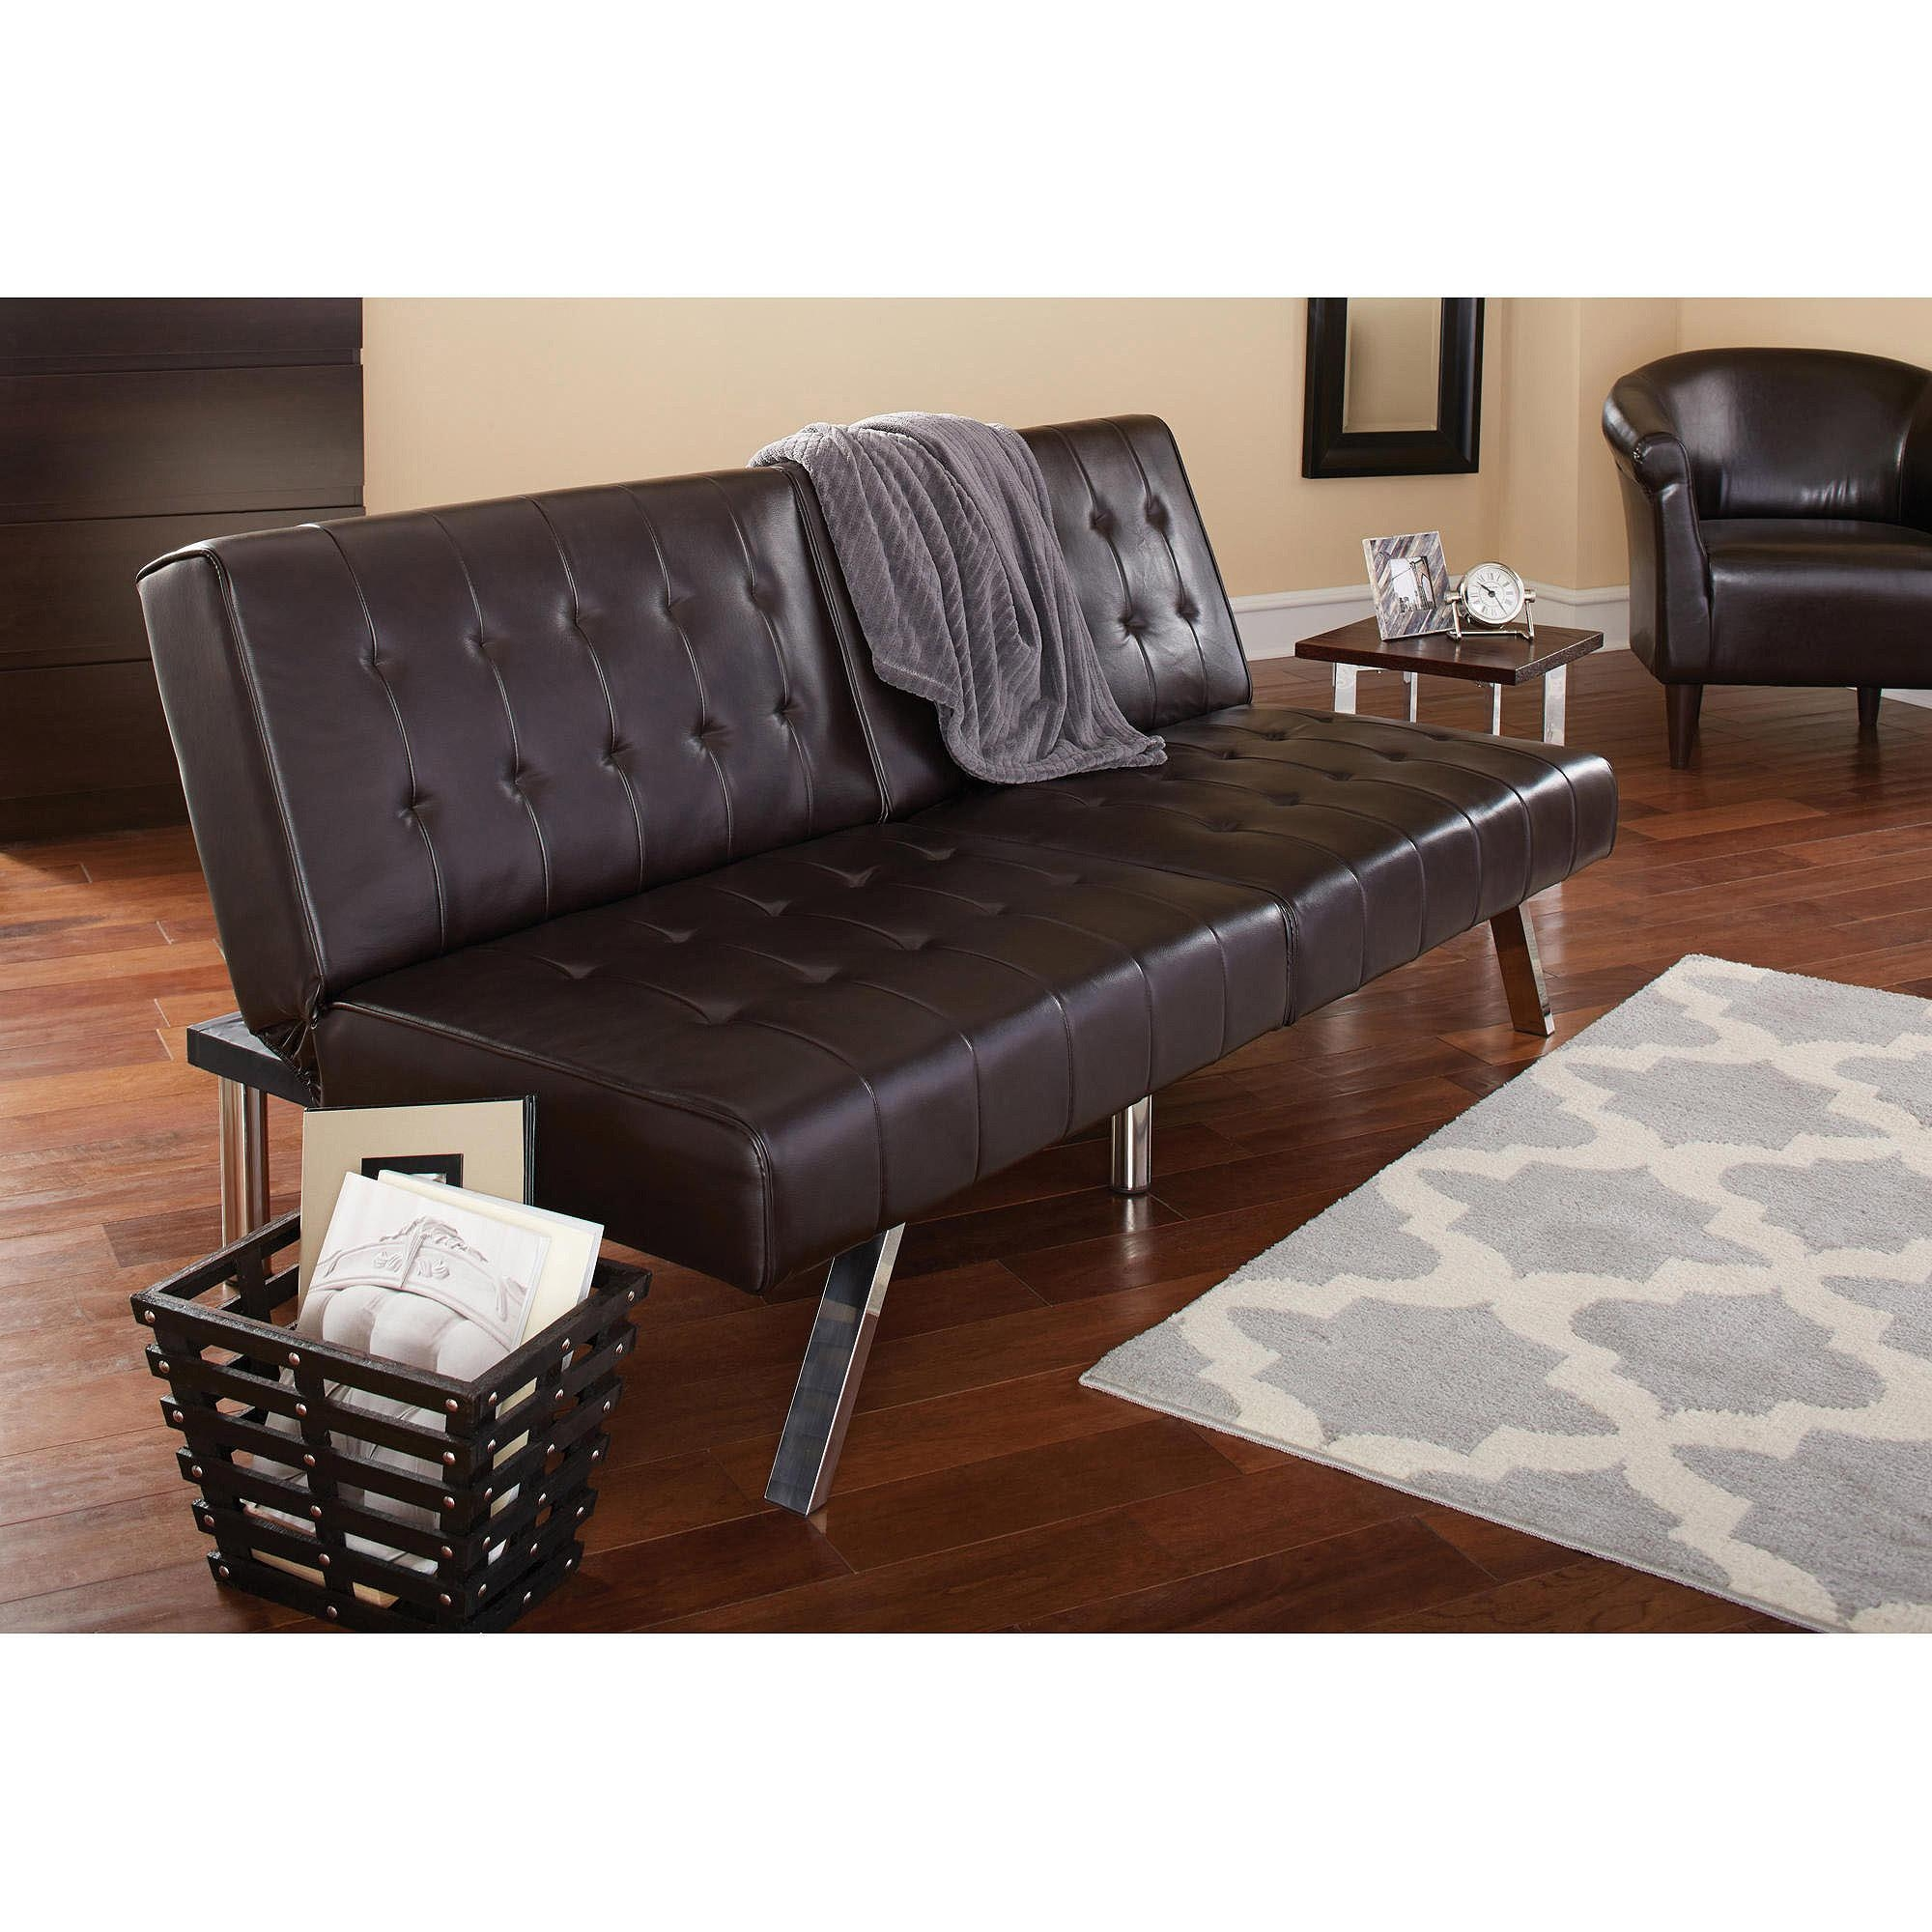 Mainstays Morgan Faux Leather Tufted Convertible Futon, Brown Intended For Mainstays Sleeper Sofas (View 10 of 20)